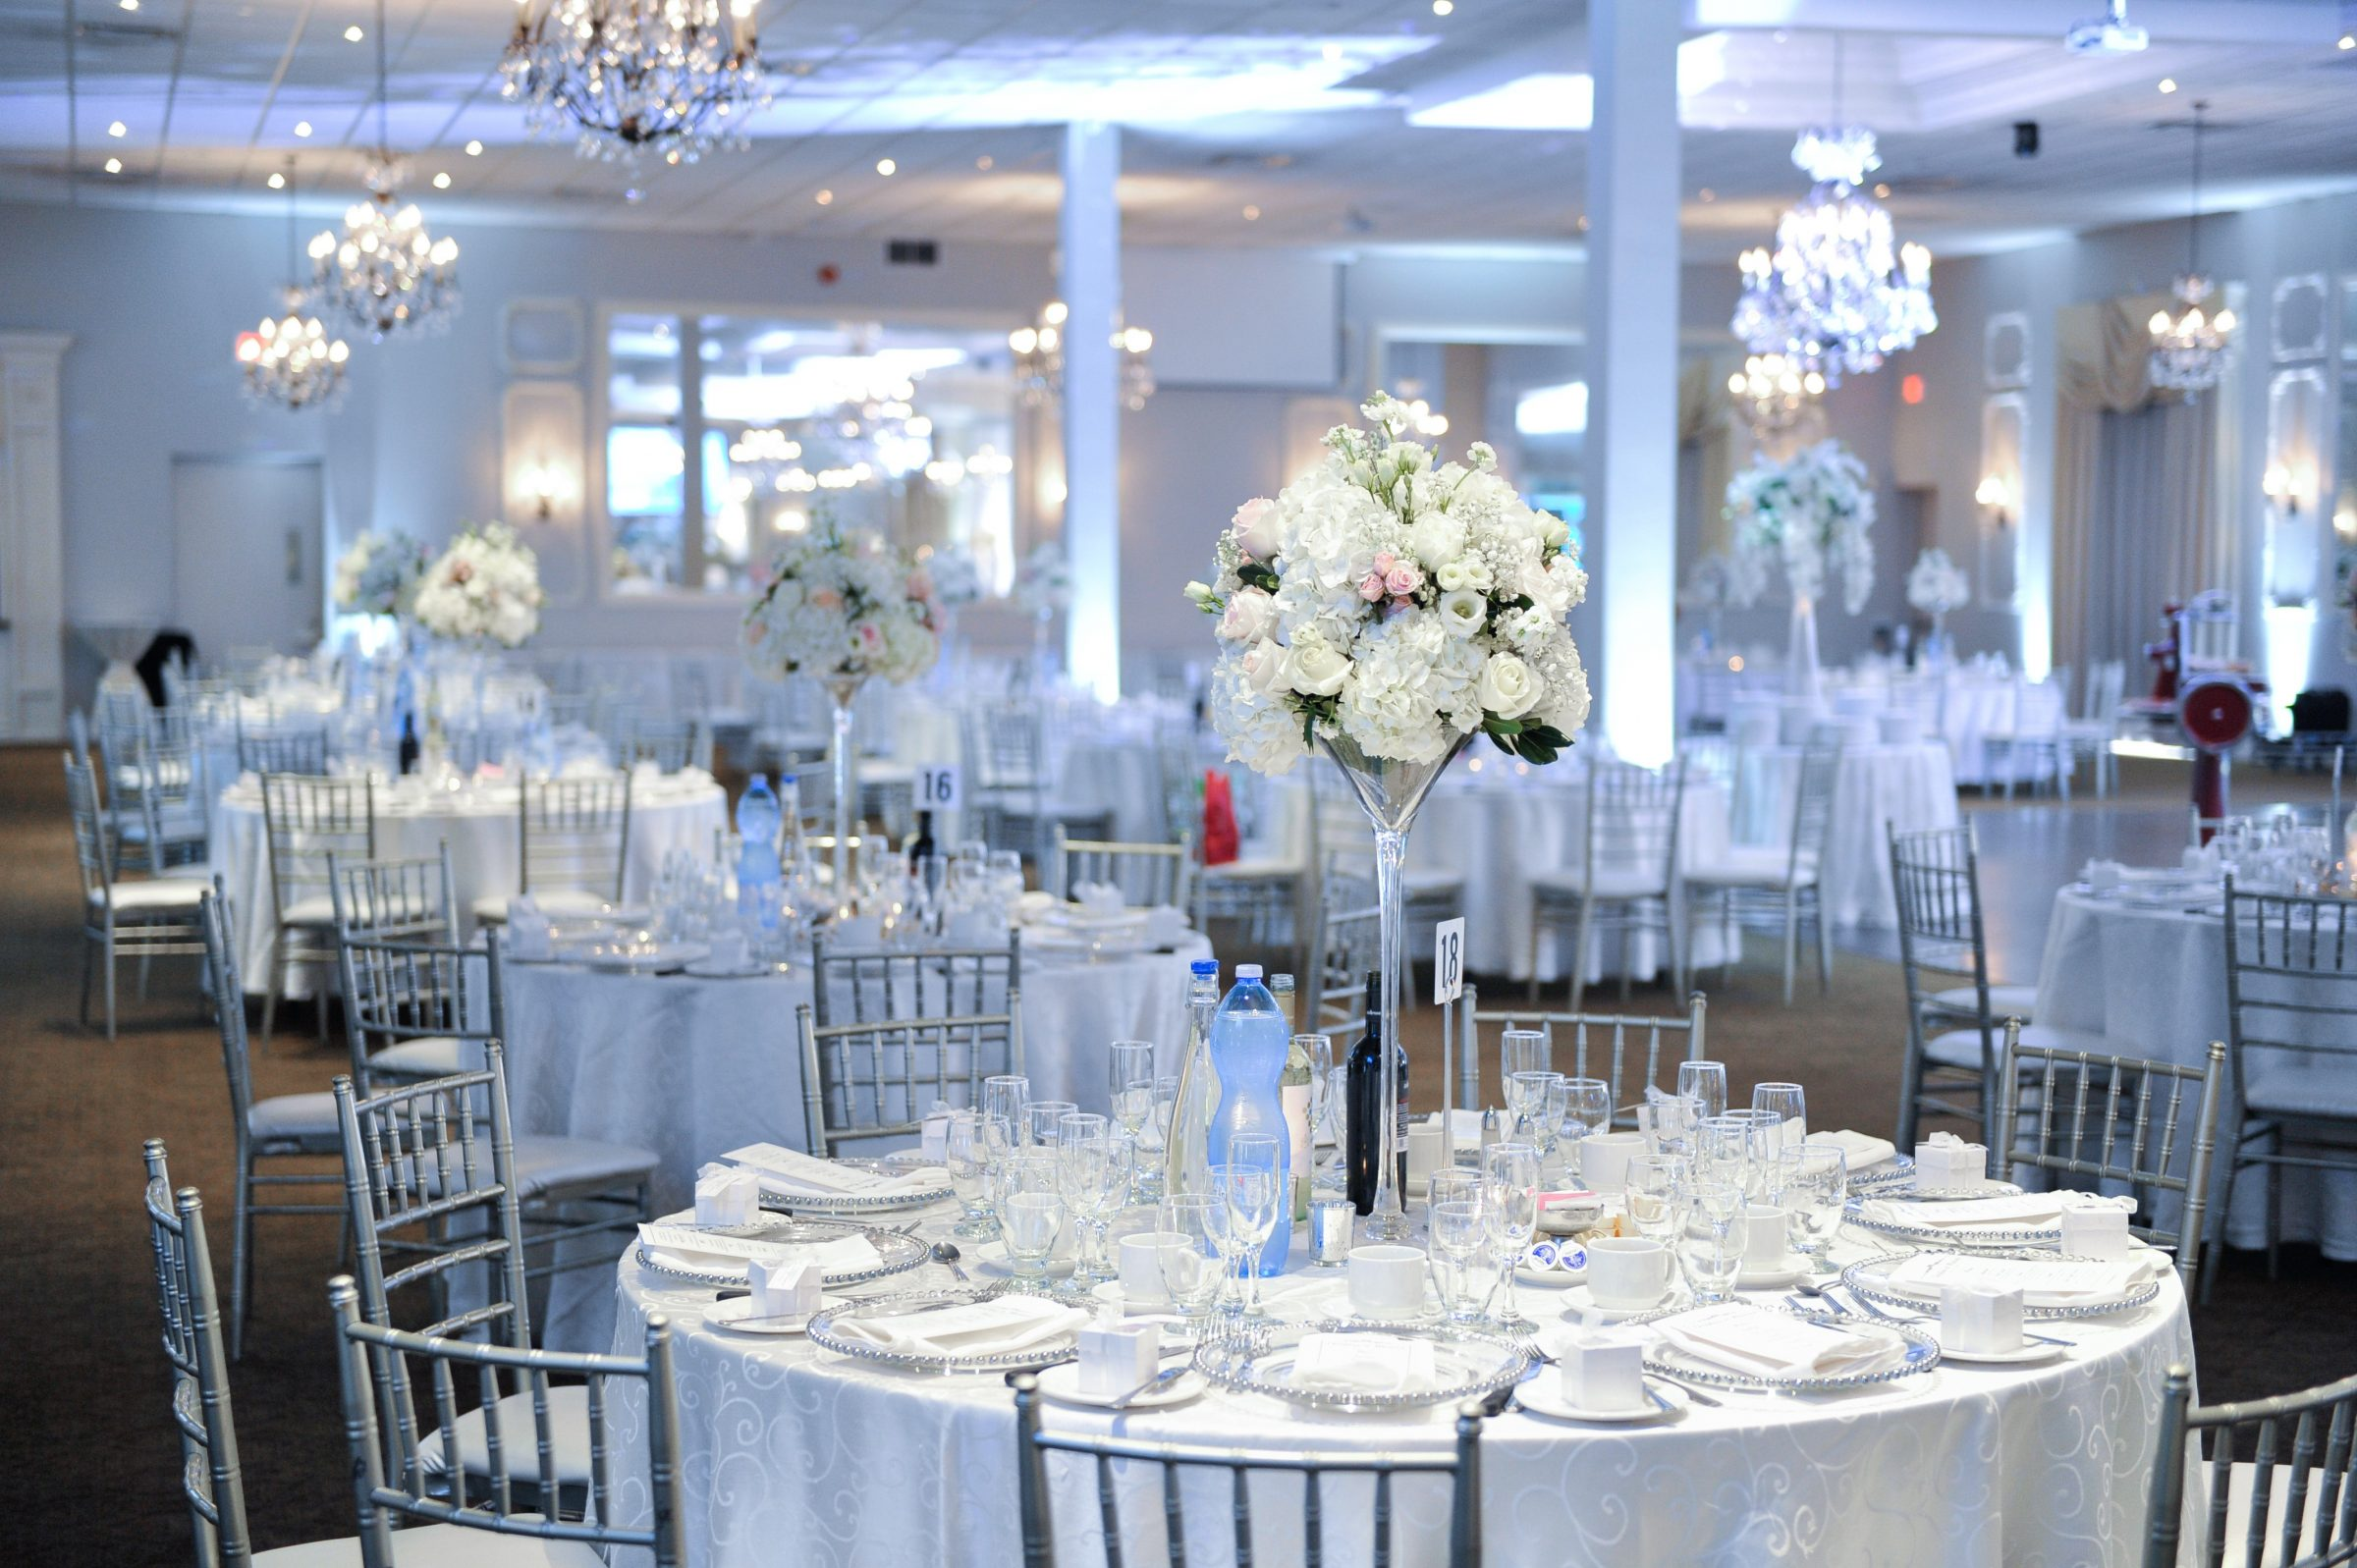 Stunning White and Blush Tables